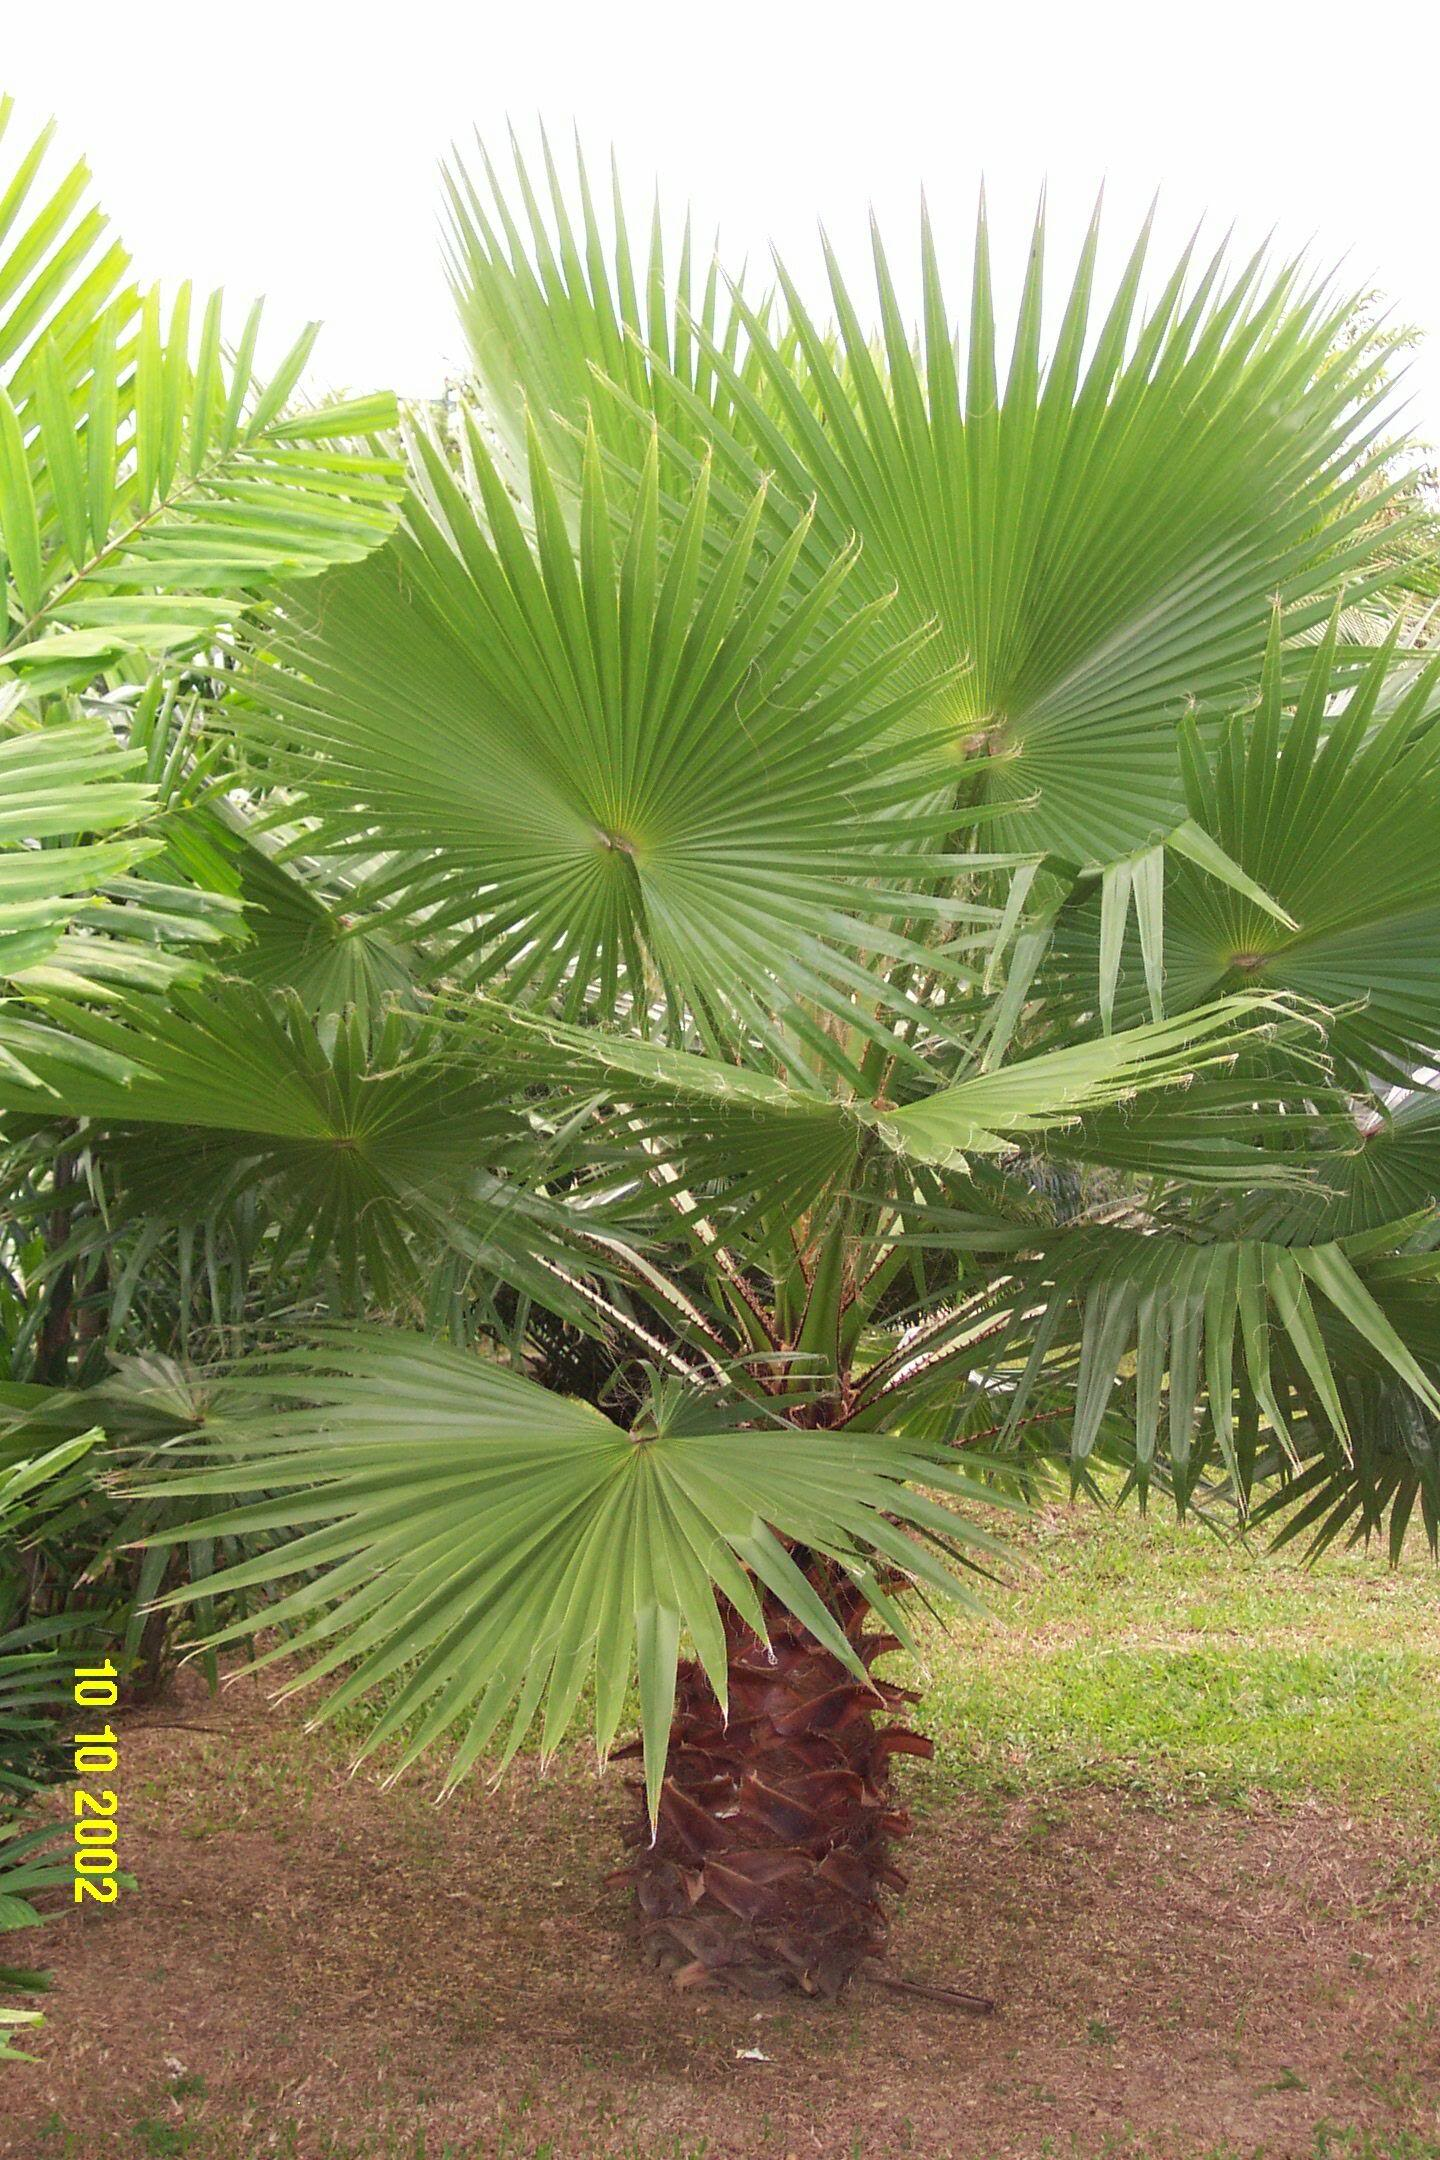 washingtonia robusta palmier du mexique palmier de washinton la palmeraie fr